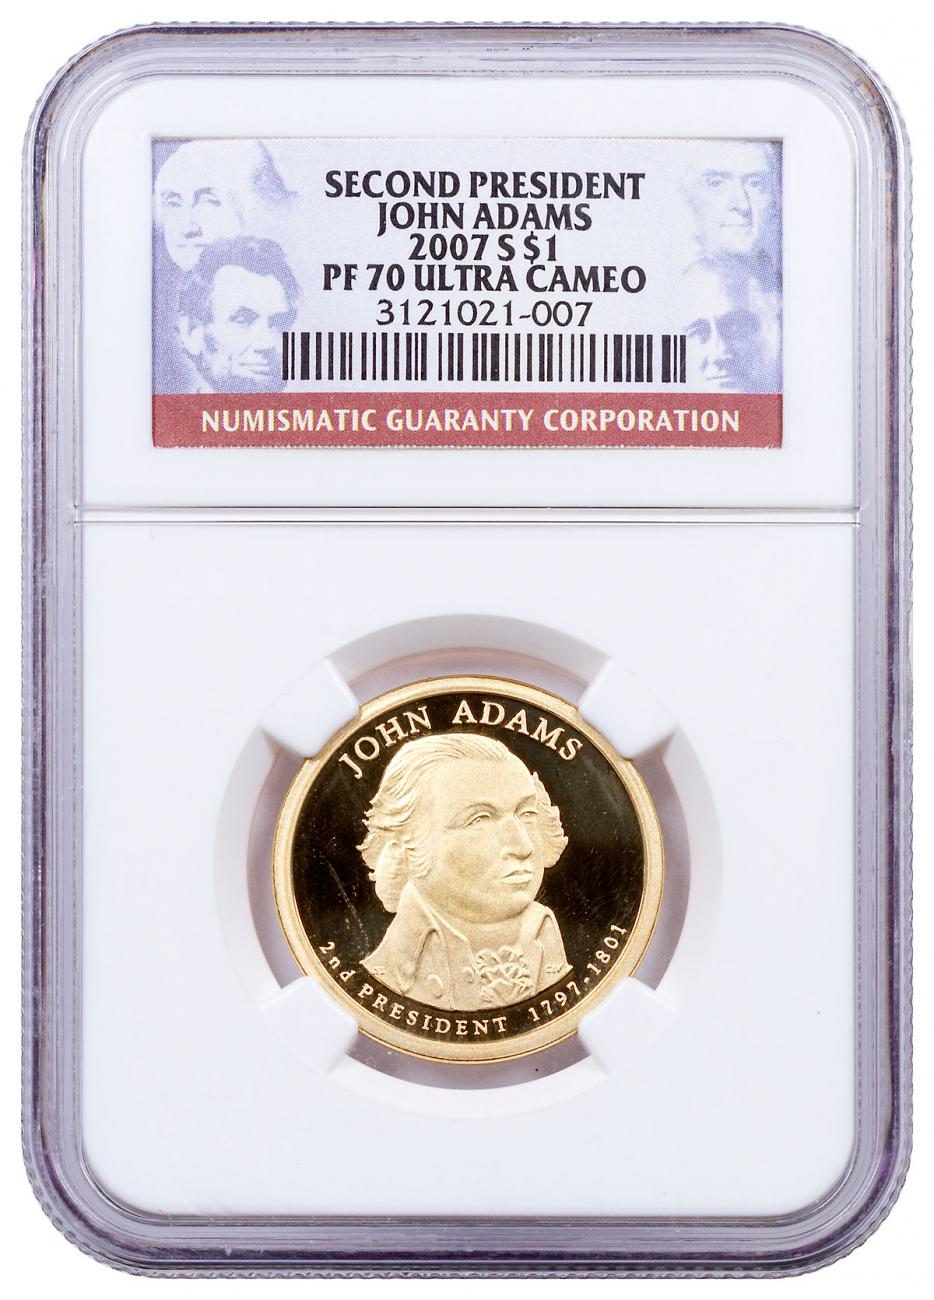 2007-S John Adams Proof Presidential Dollar NGC PF70 UC